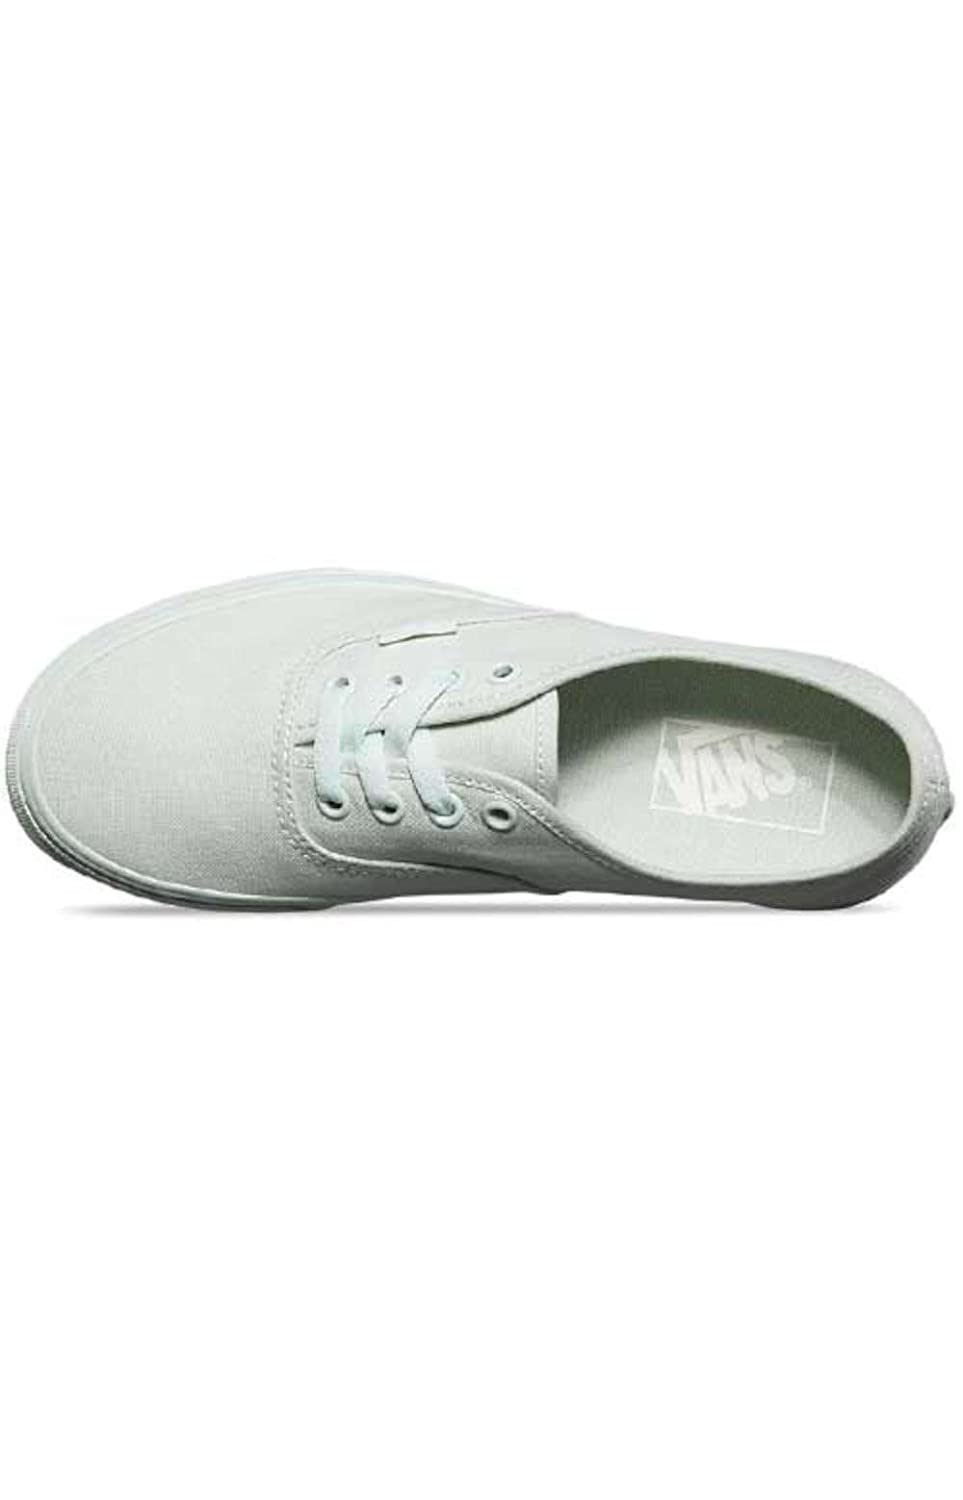 ... Vans US Authentic B01M2CWWOG 7.5 M US Vans Women   6 M US Men 1fc835526